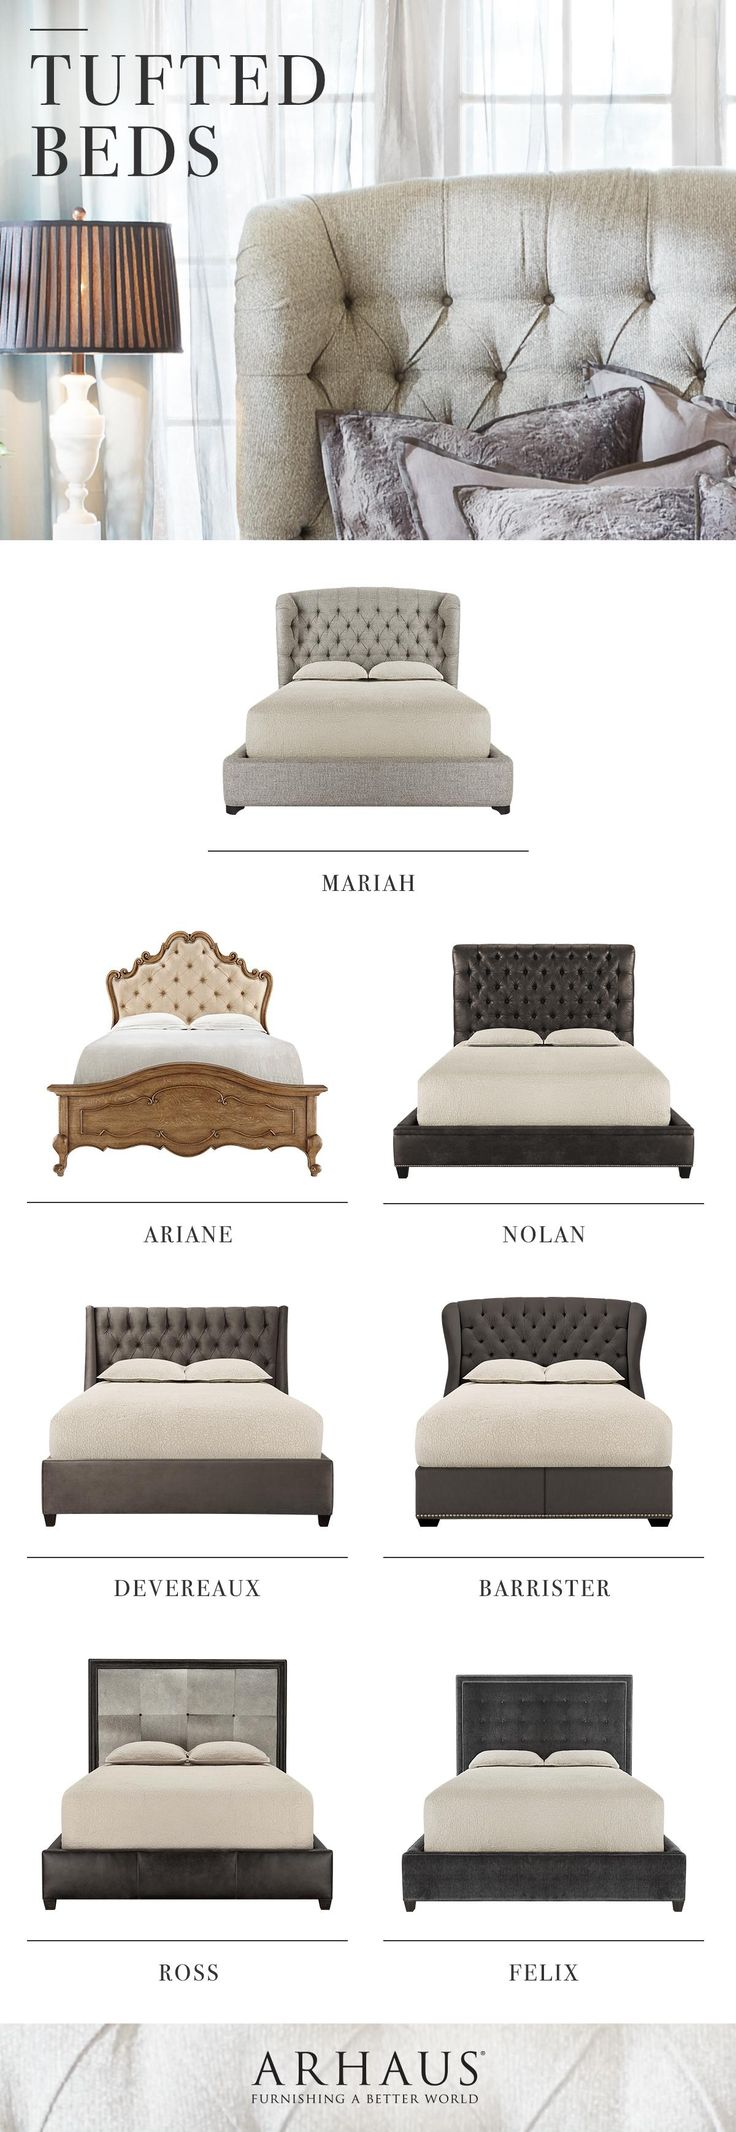 Styles Of Headboards 25+ best vintage headboards ideas on pinterest | shabby chic porch